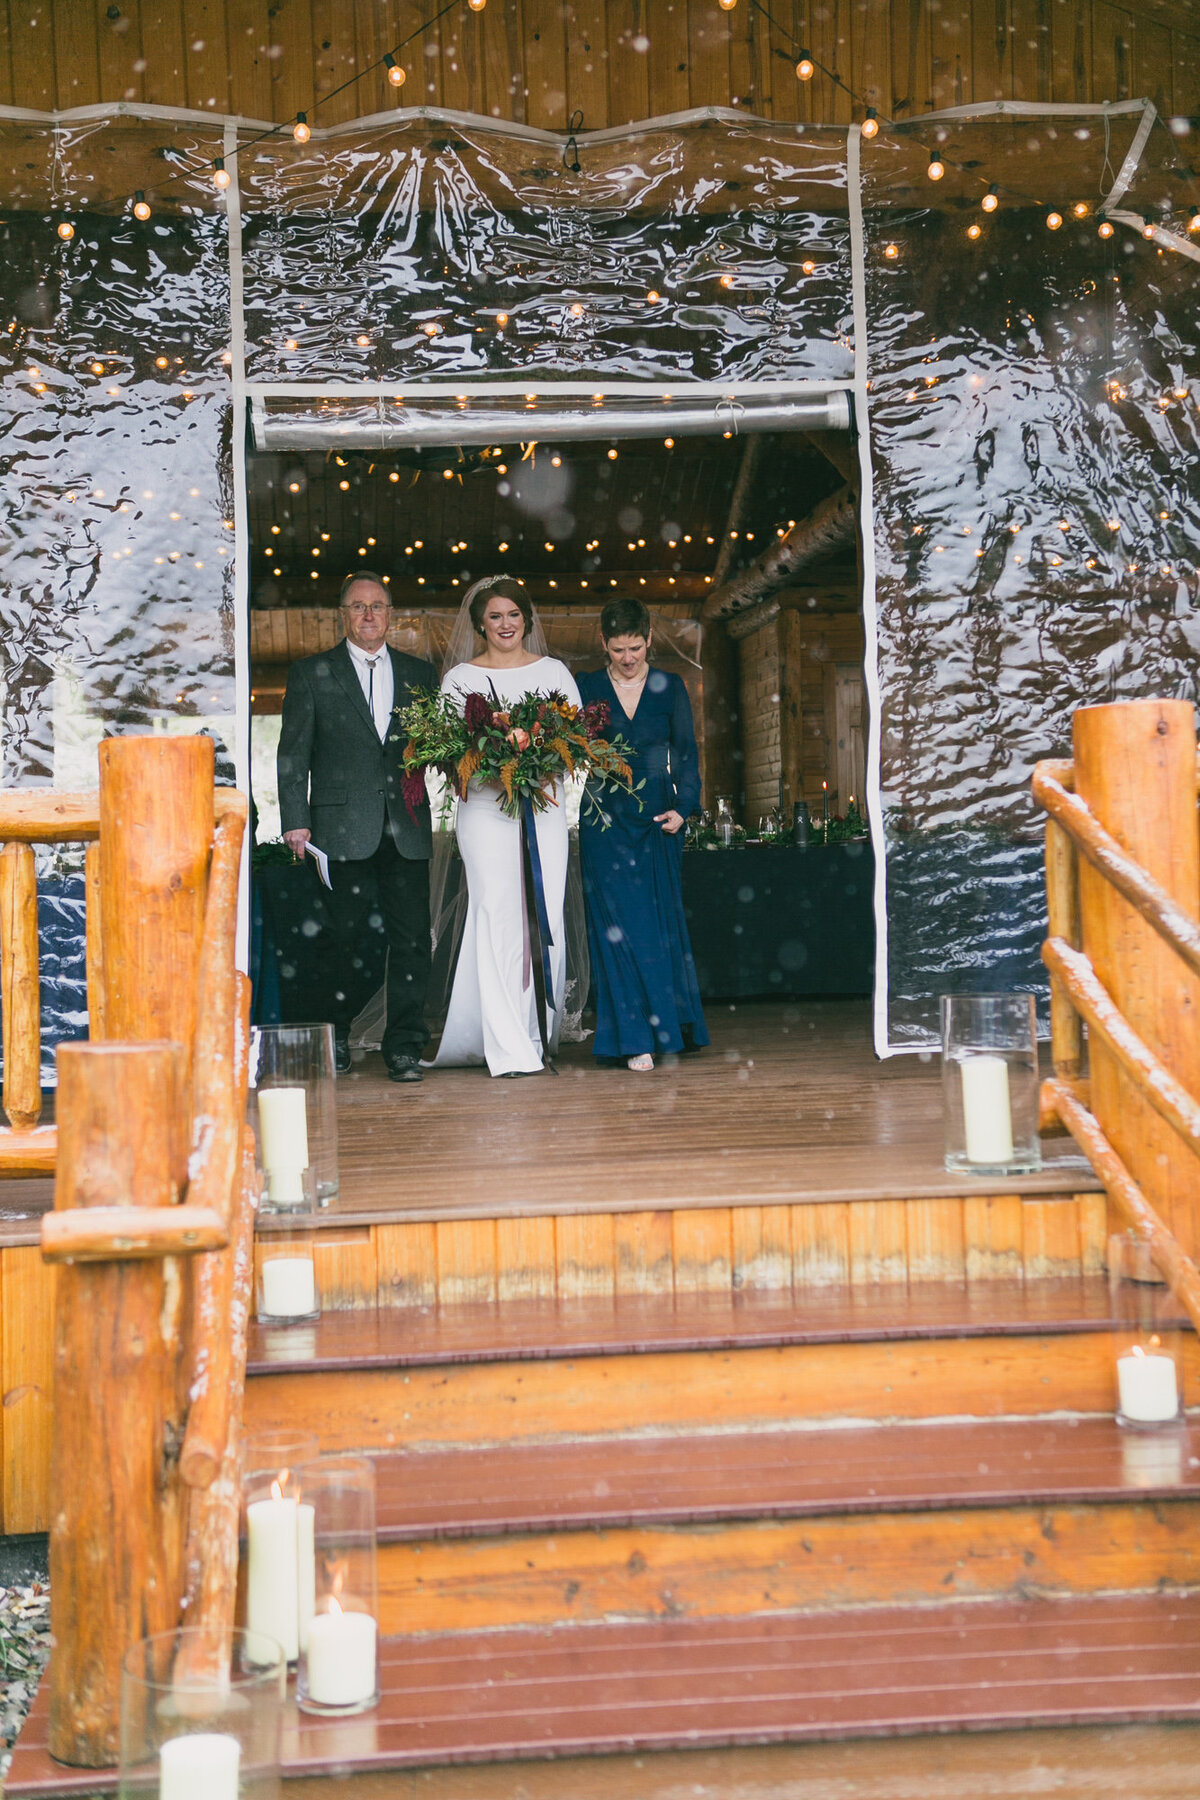 Jennifer_Mooney_Photography_Abbey_Stephen_Fall_Winter_Glacier_Park_Elopement-138